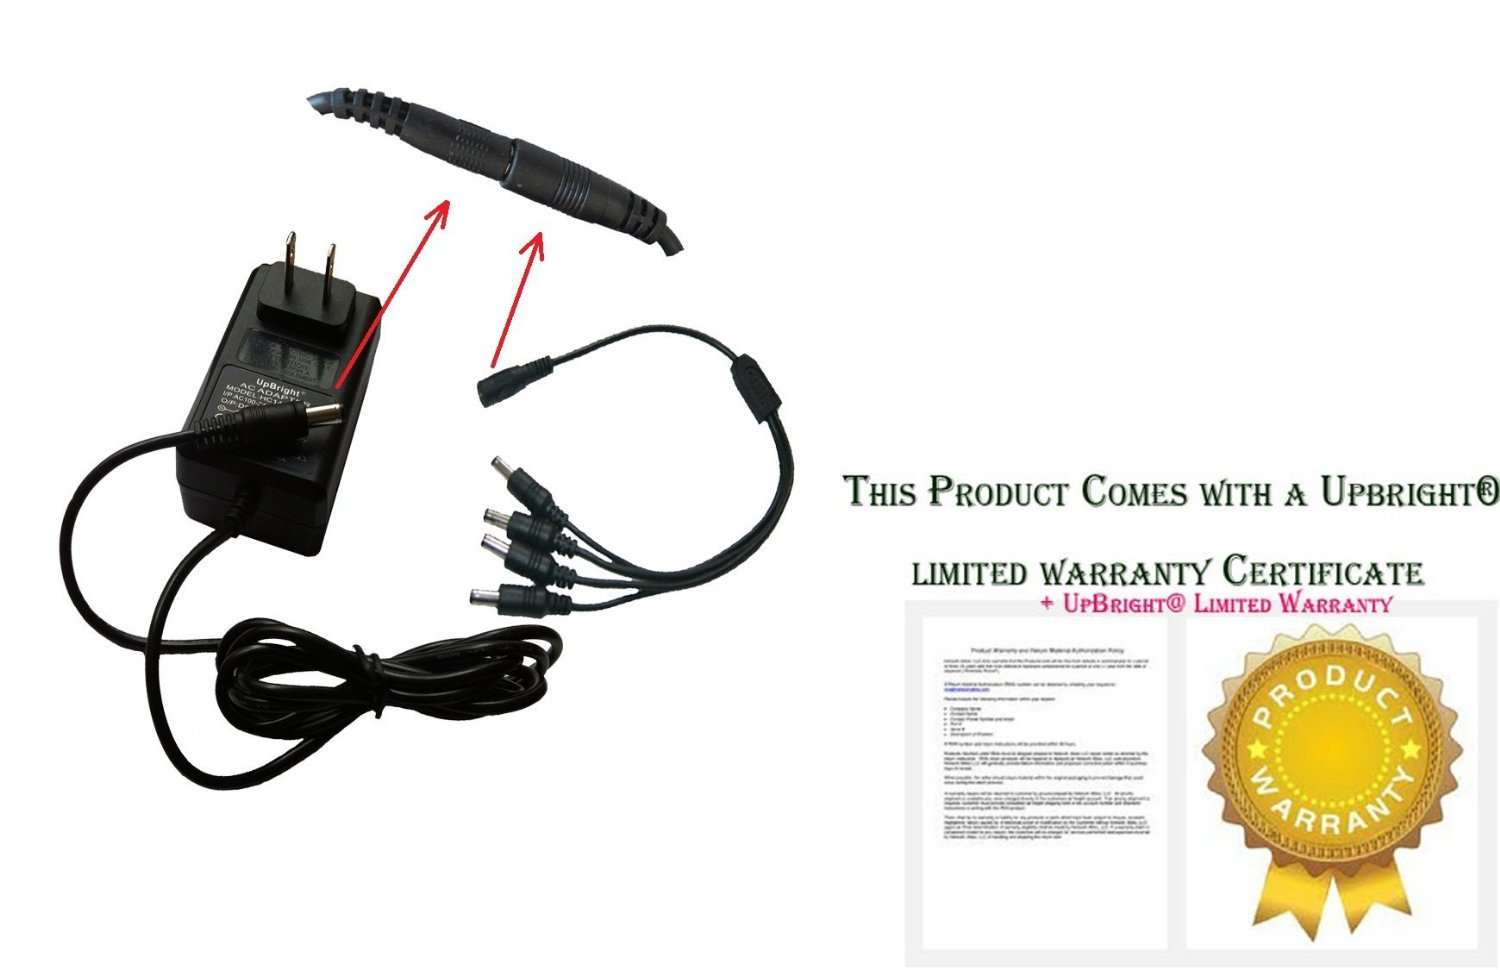 AC Adapter For Q-SEE QSDS4122 QS-POWER4 4-way Splitter Power Supply CCTV Cameras